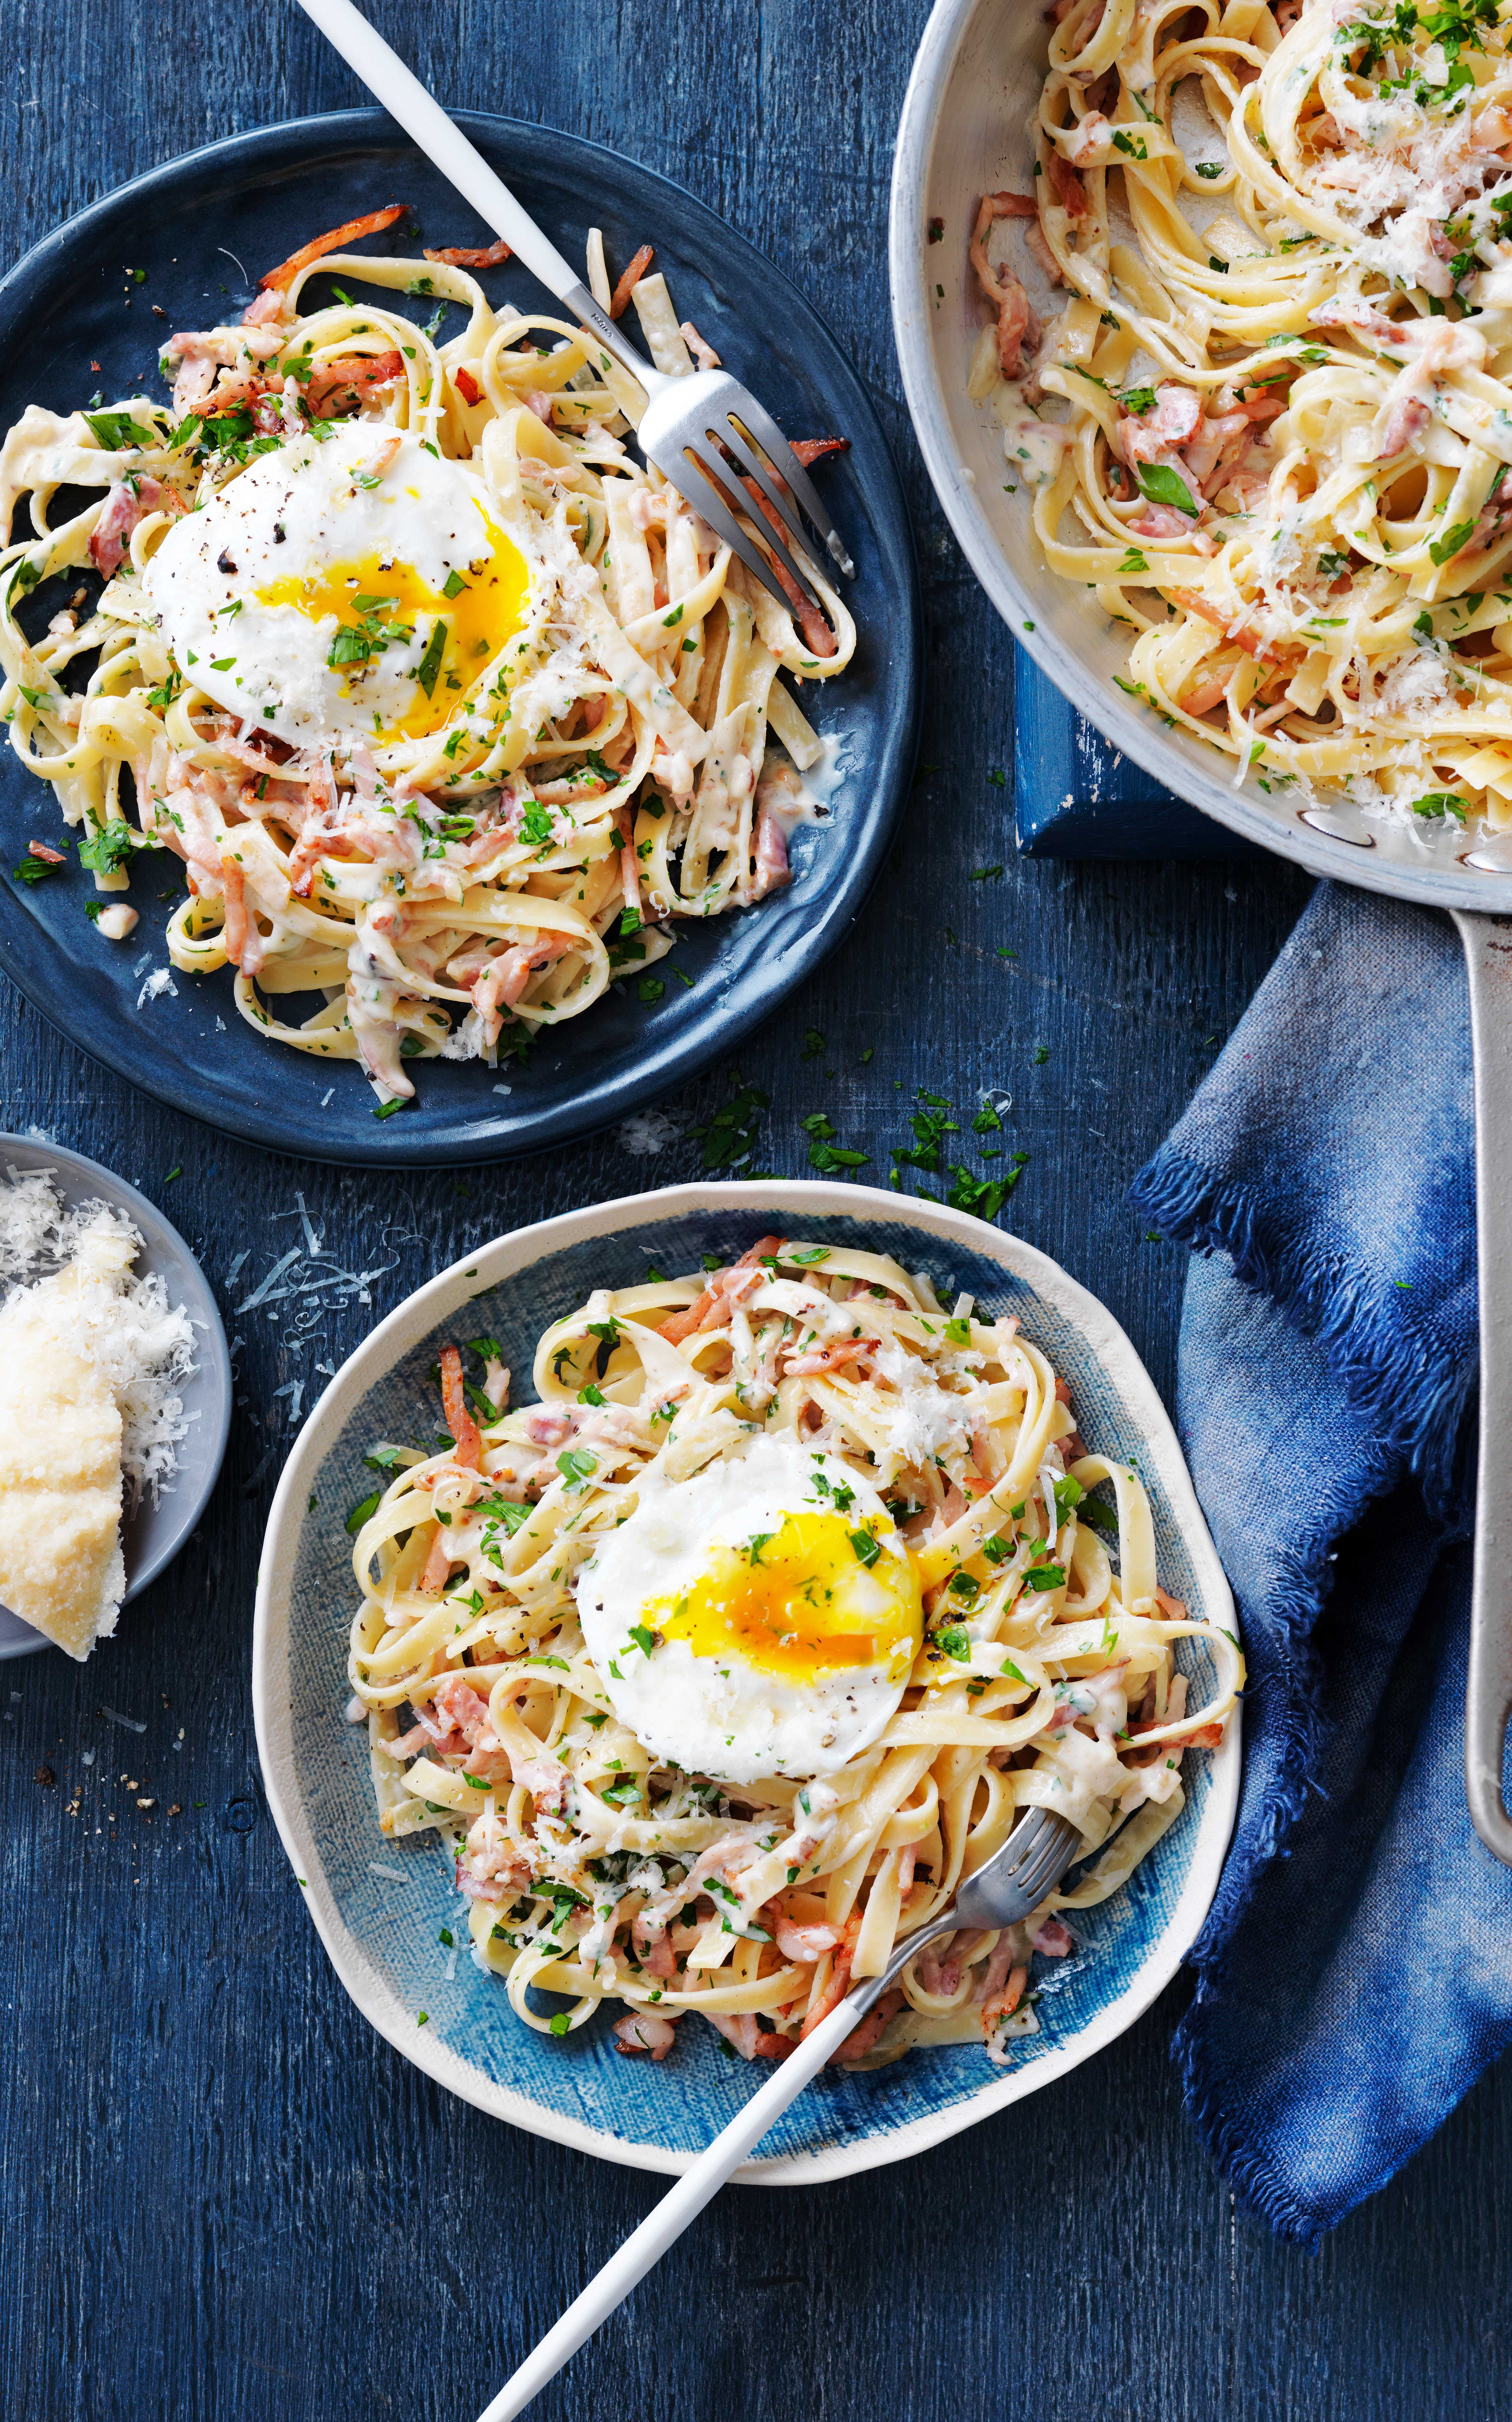 Creamy Fettuccine Carbonara recipe with poached egg